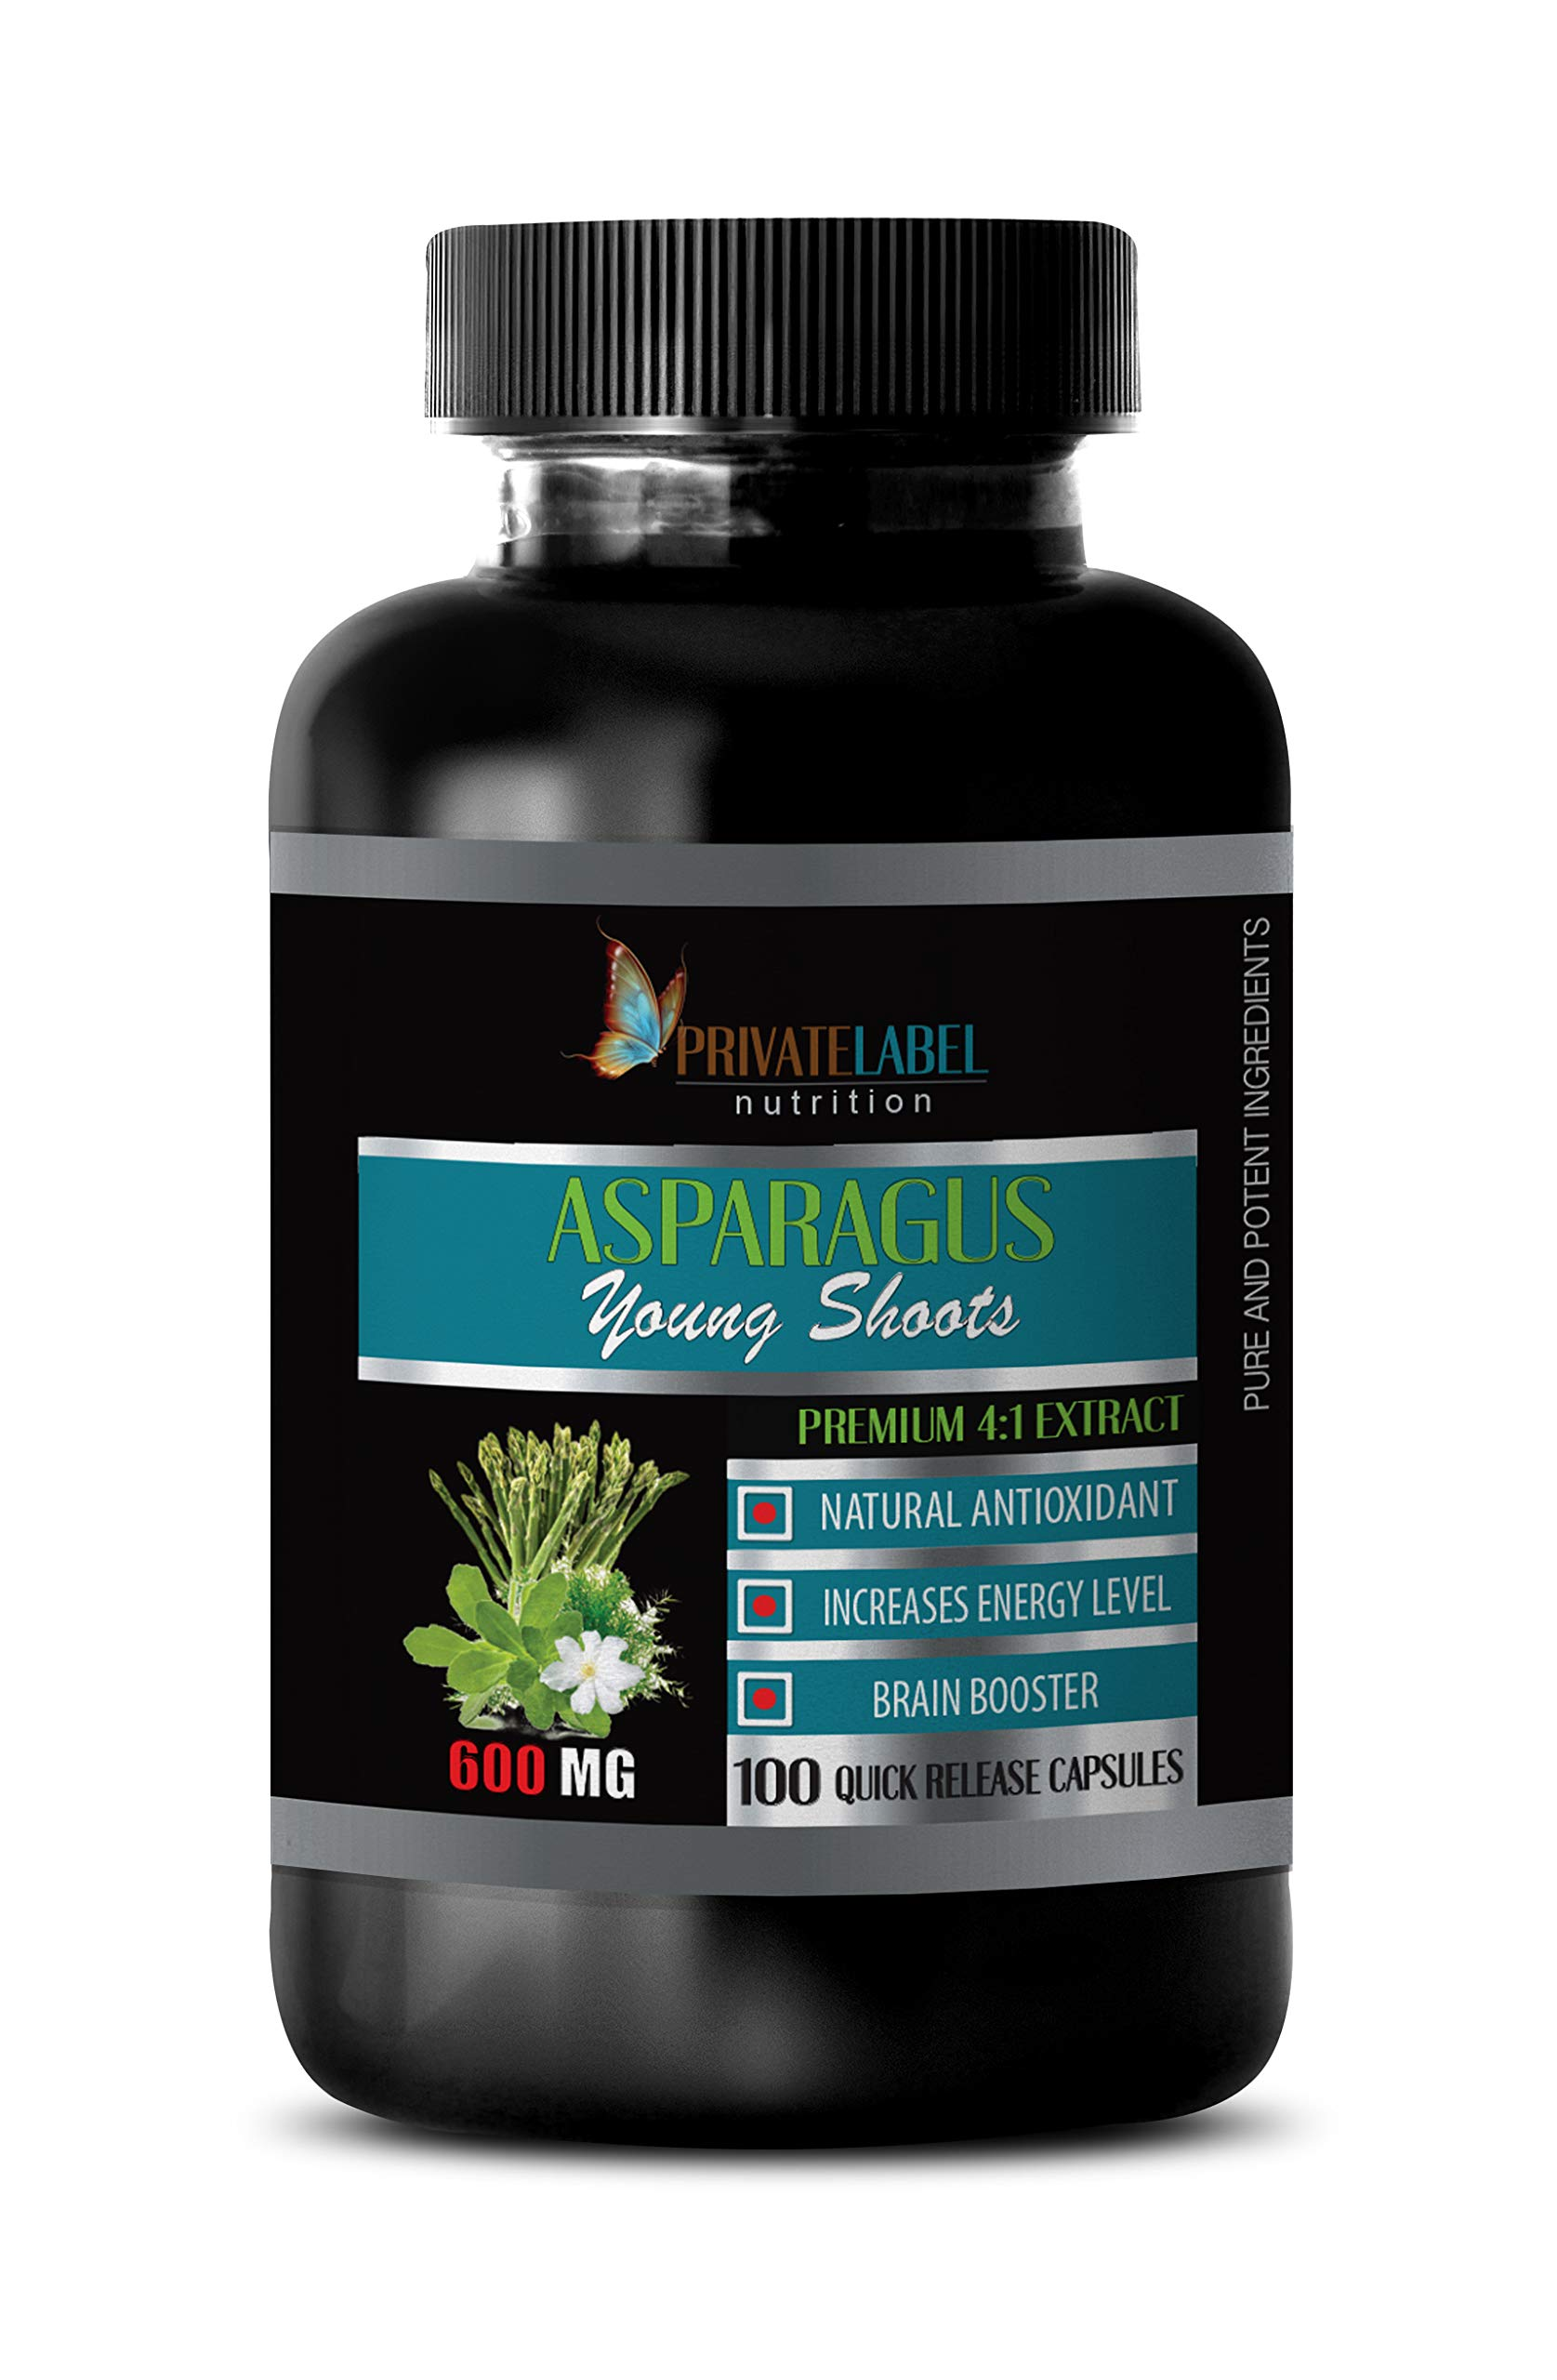 Diuretic and Anti-inflammatory Pill - Asparagus Young Shoots Premium 4:1 Extract 600 Mg - Asparagus Extract - 1 Bottle 100 Capsules